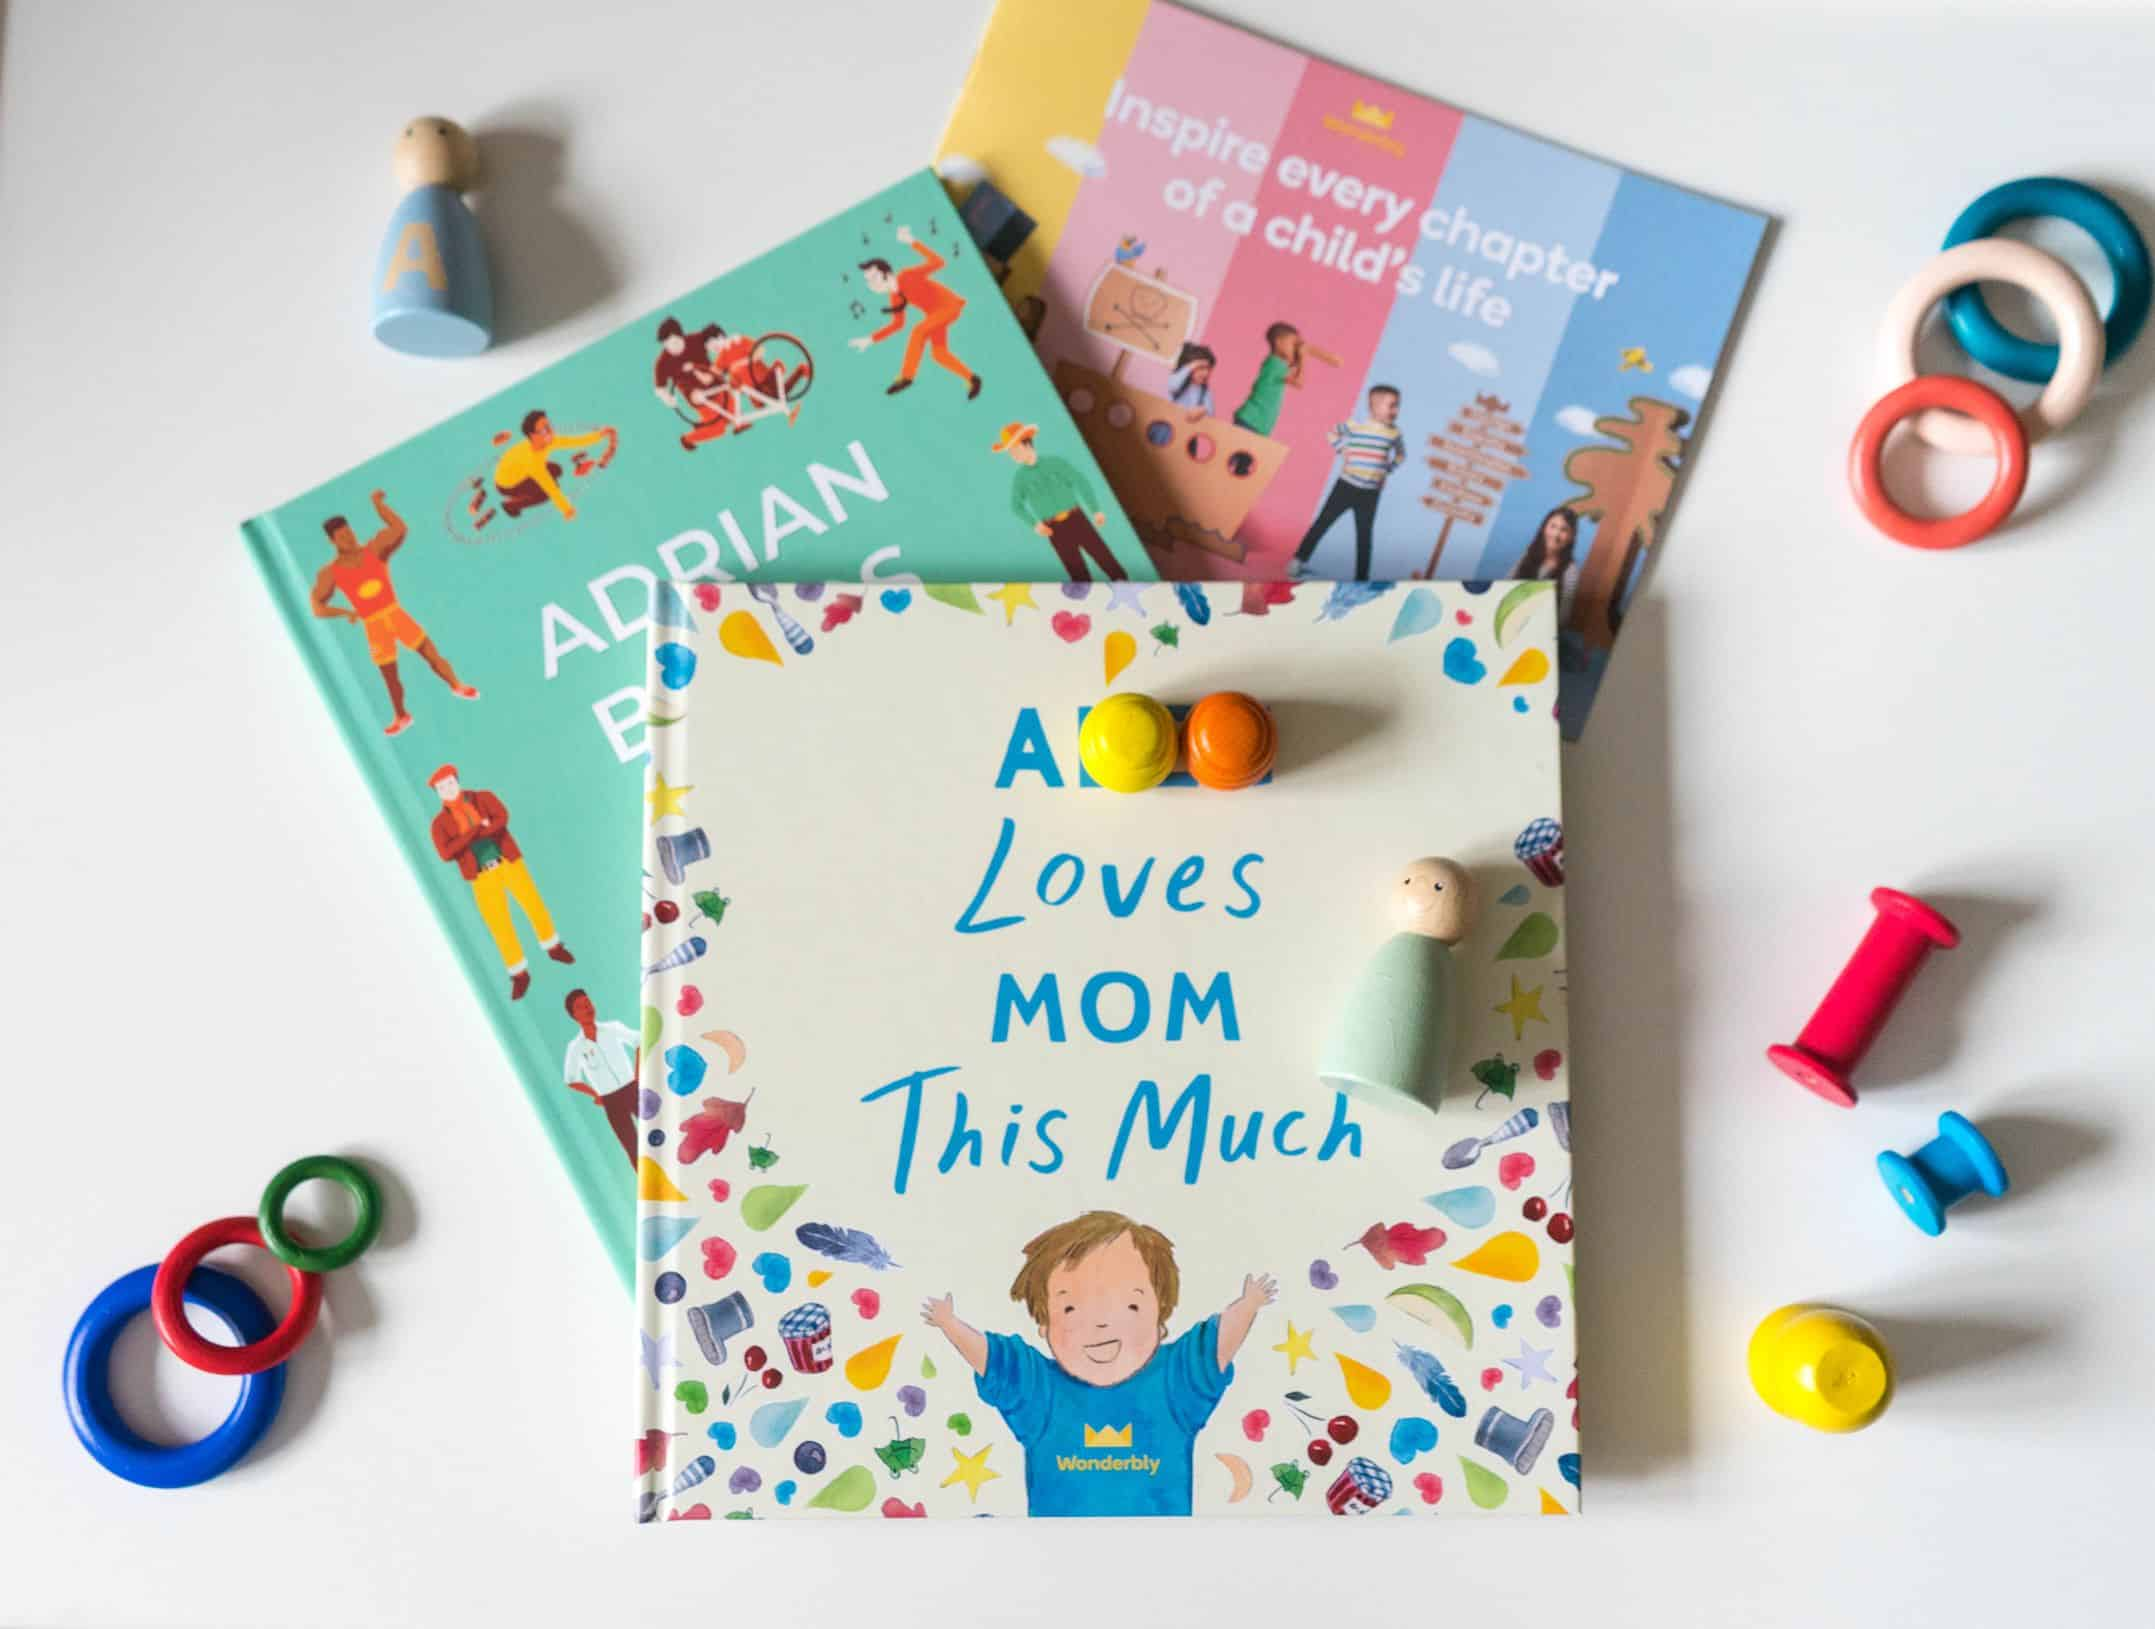 Personalized books for kids | Wonderbly